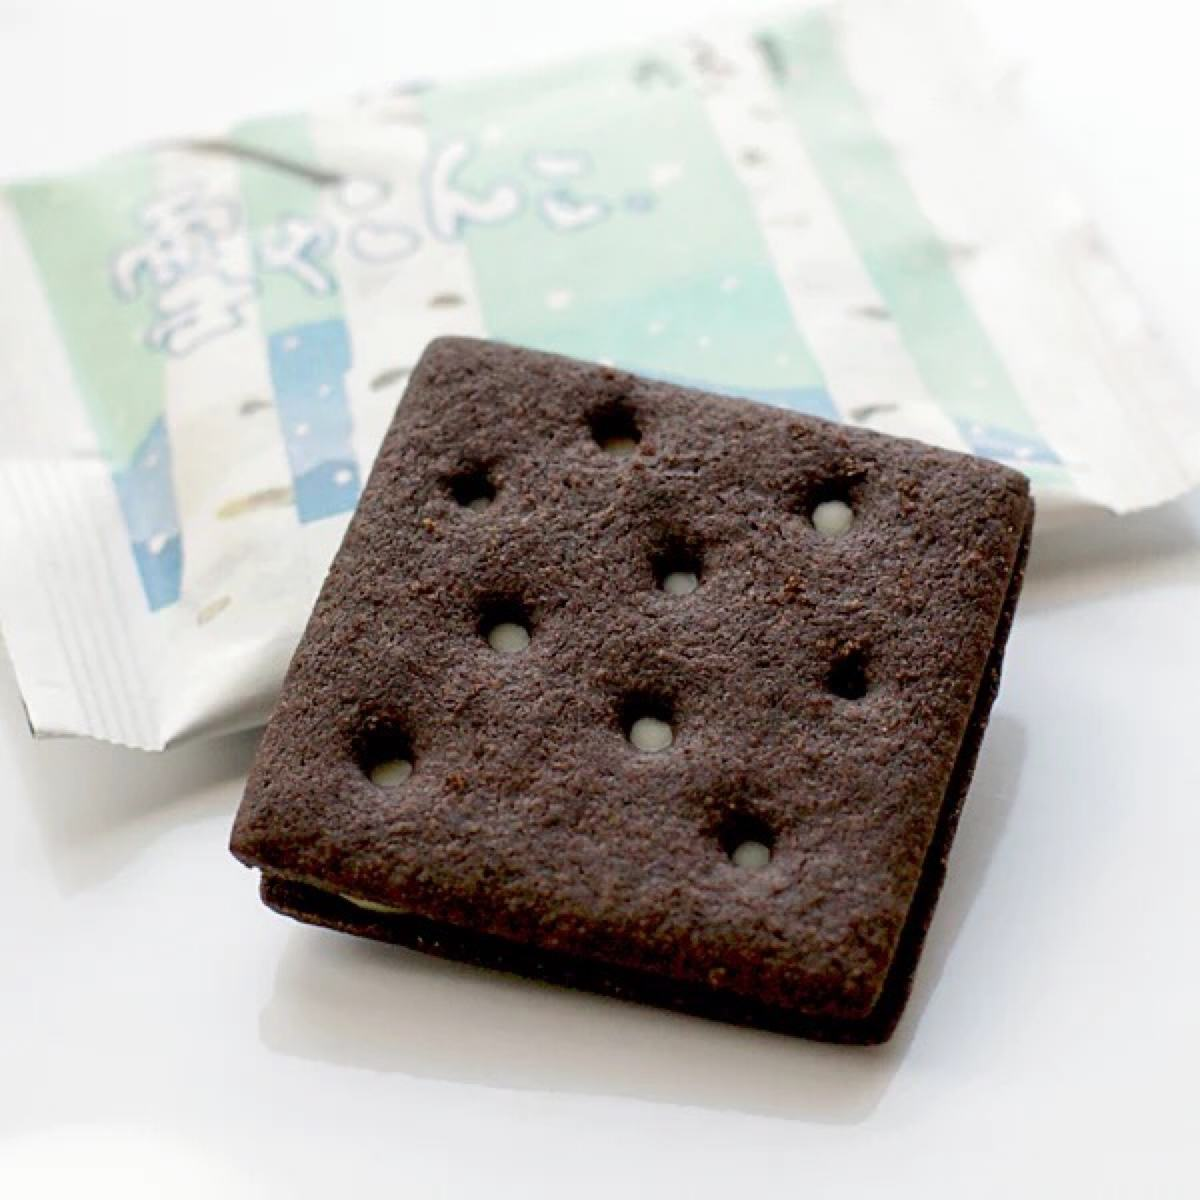 can you supply me chocolate biscuit?